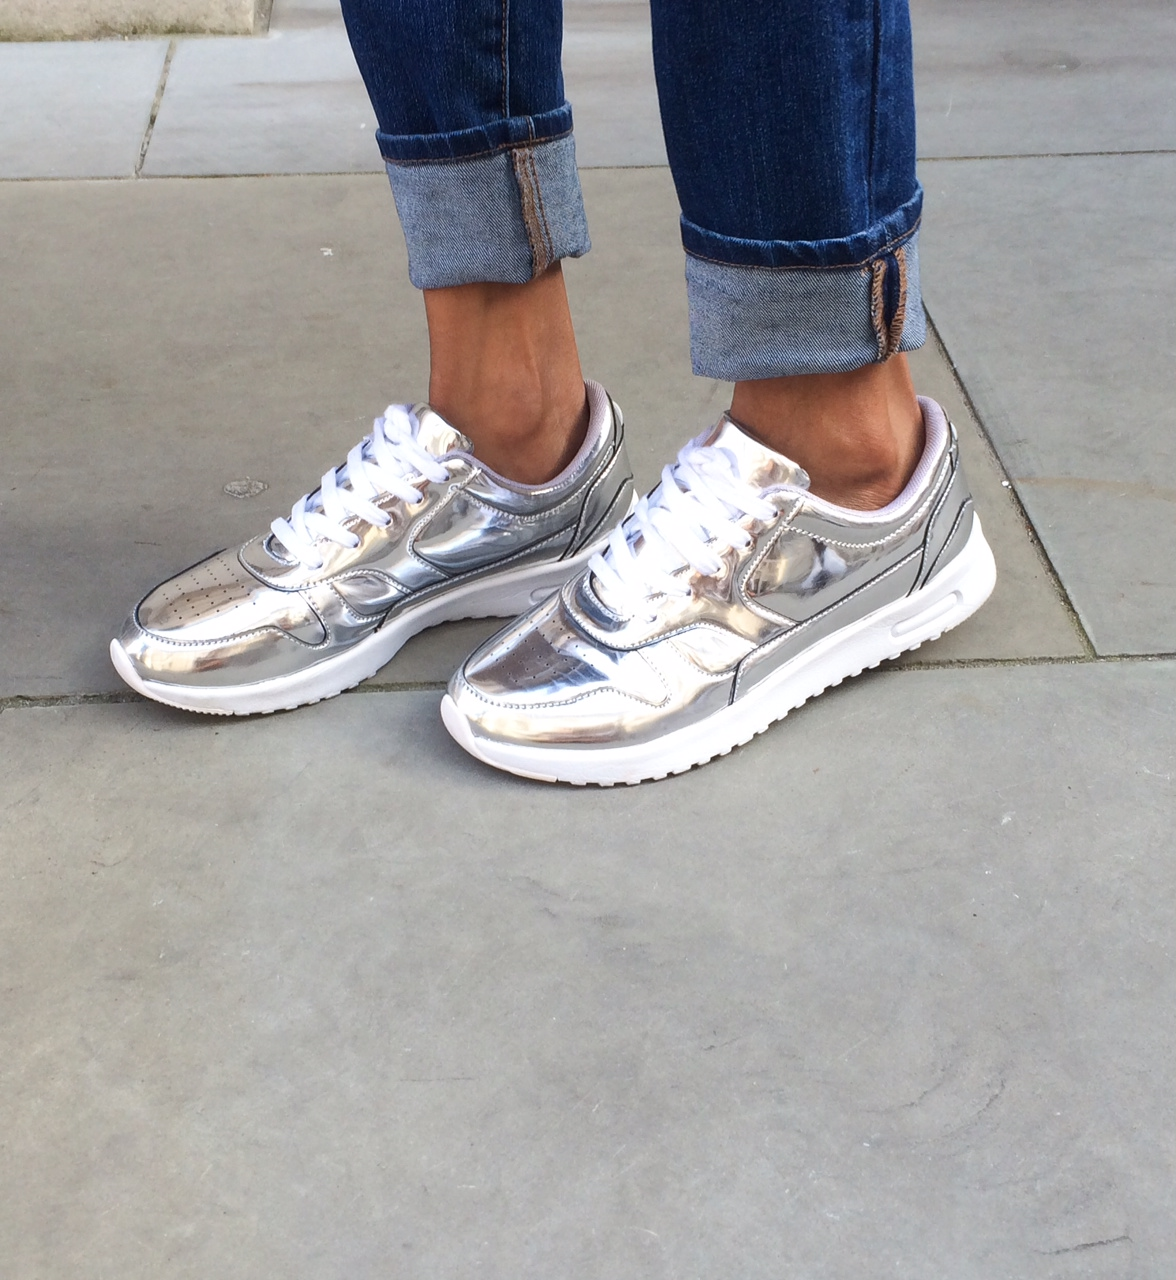 Metallic Trending Sneakers Sale: Save Up to 50% Off! Shop softhome24.ml's huge selection of Metallic Trending Sneakers - Over 70 styles available. FREE Shipping & .